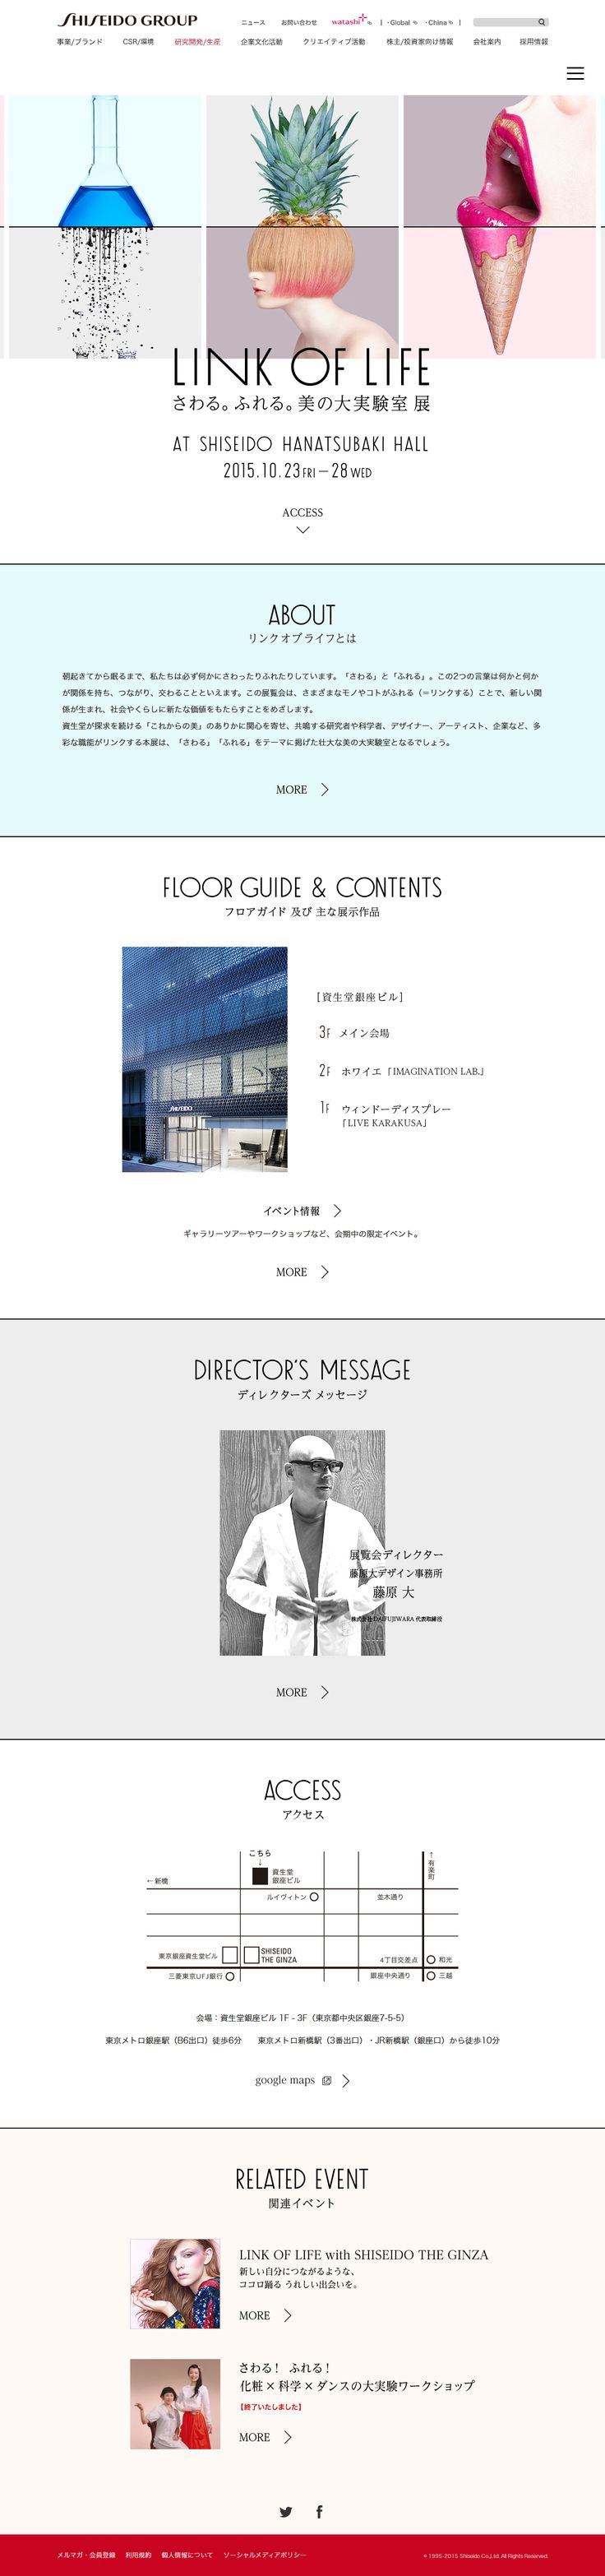 http://www.shiseidogroup.jp/link/?rt_bt=top-recommend-sub_004